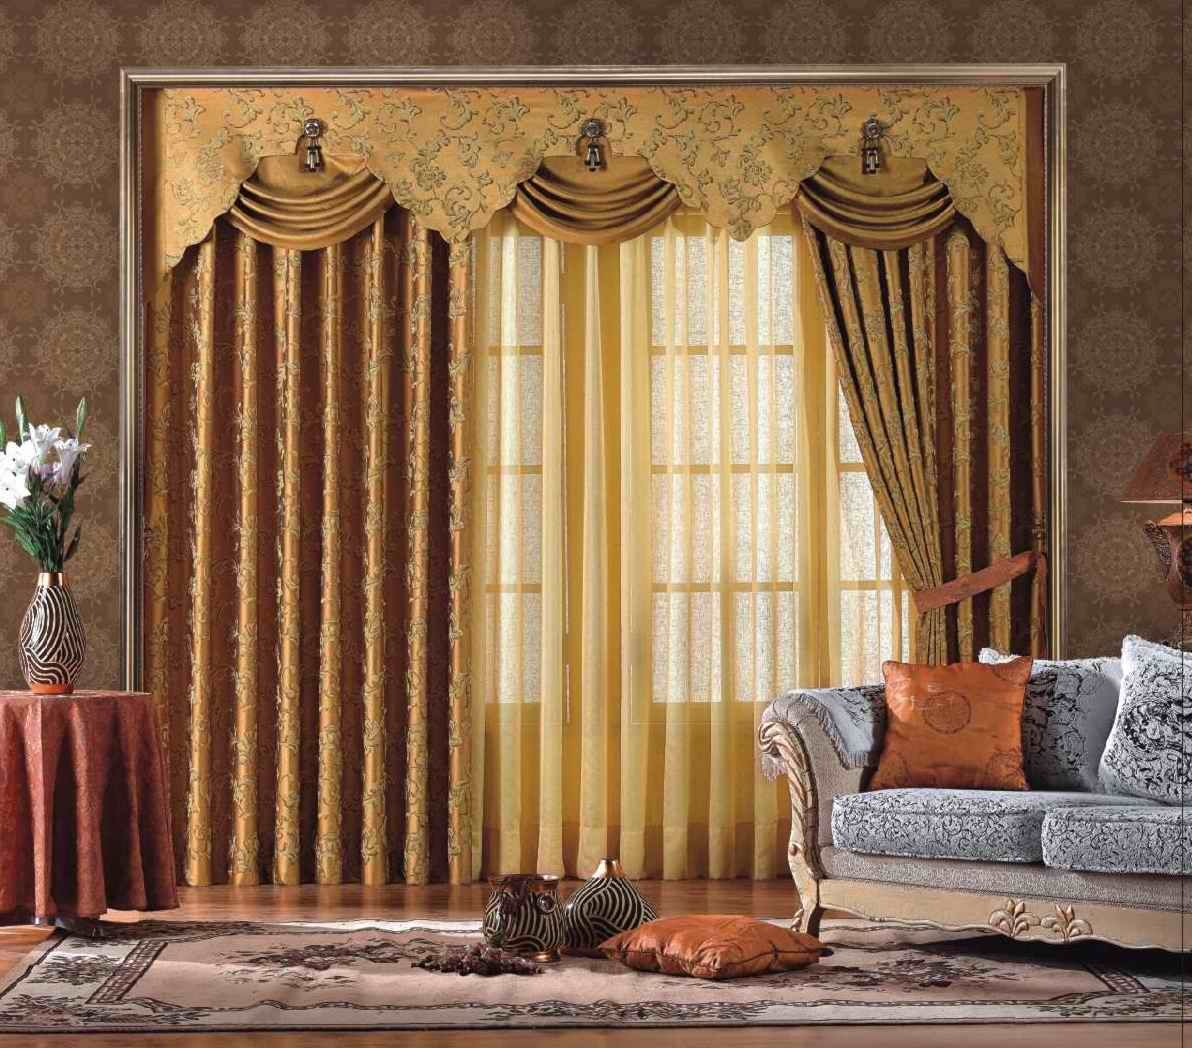 Drapes Quality Curtains And Drapes View High Quality Curtains And Drapes Curtains Living Room Living Room Drapes Valances For Living Room